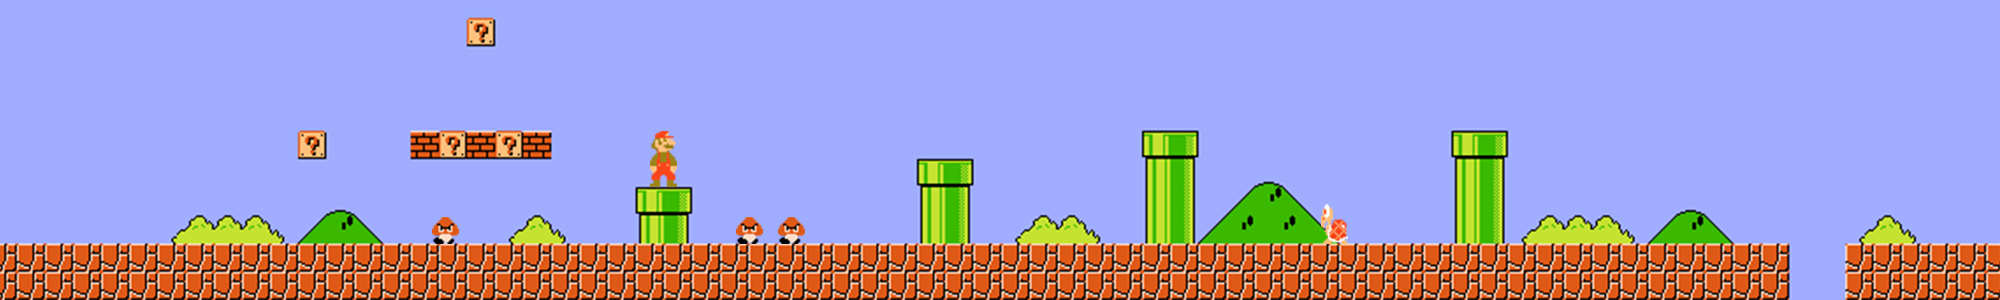 CI_NSwitchDS_SuperMarioBros35_StageBackground_Level2_Desktop.jpg